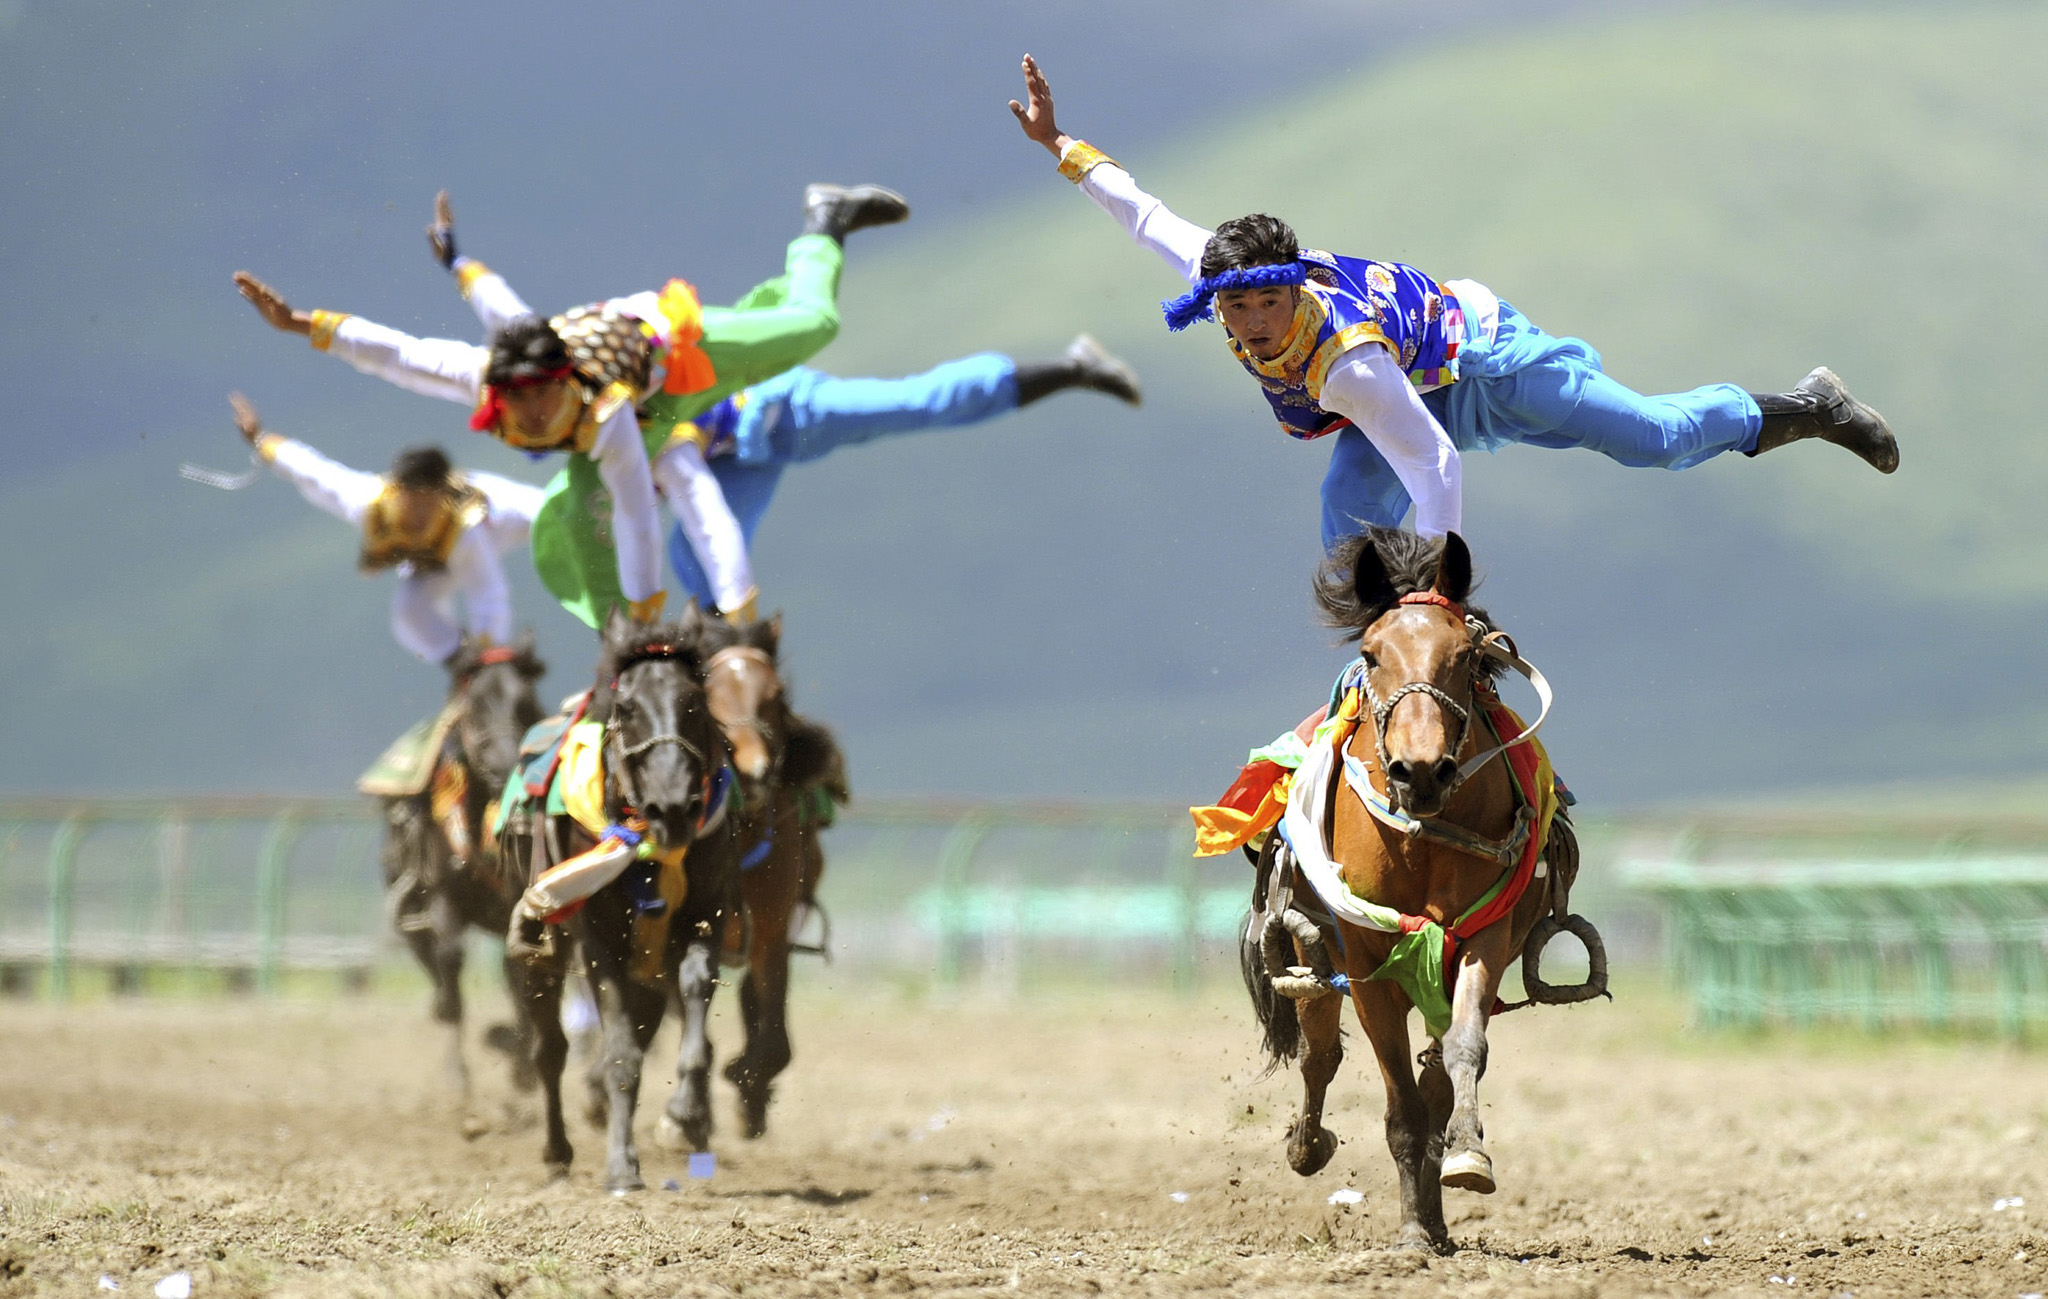 Tibetan participants perform on horses during a traditional equestrian competition in Aba Tibetan and Qiang Autonomous Prefecture...Tibetan participants perform on horses during a traditional equestrian competition in Hongyuan county of Aba Tibetan and Qiang Autonomous Prefecture, Sichuan Province June 17, 2014. Picture taken June 17, 2014. REUTERS/China Daily (CHINA - Tags: SOCIETY ANIMALS TPX IMAGES OF THE DAY) CHINA OUT. NO COMMERCIAL OR EDITORIAL SALES IN CHINA